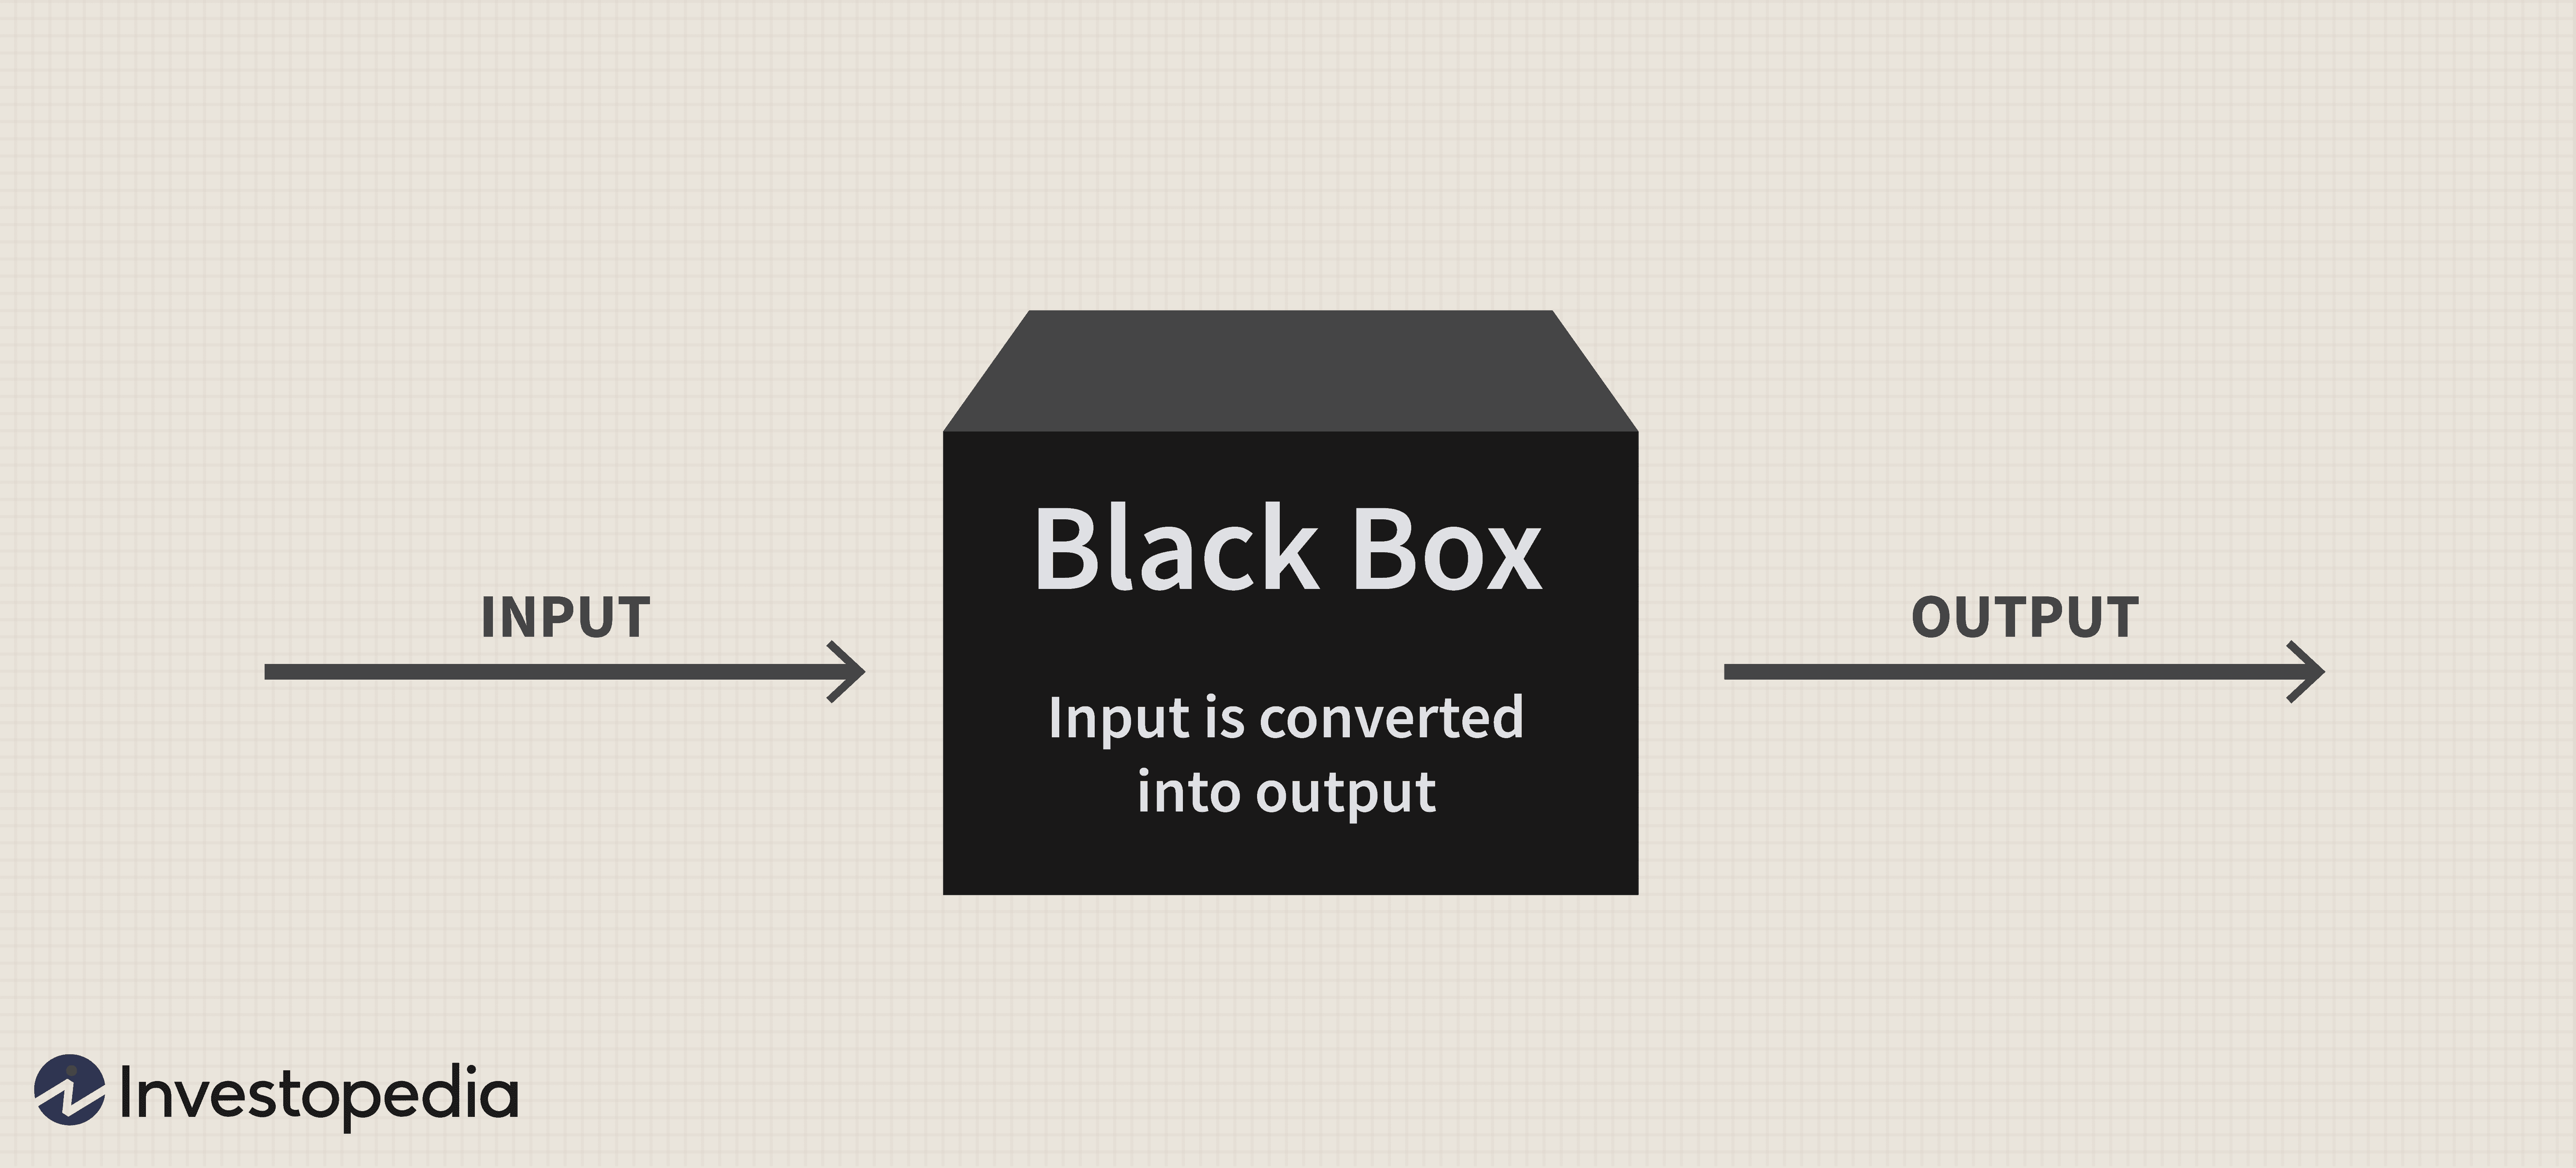 Black Box Stocks Review Is Their Scanner Worth It?